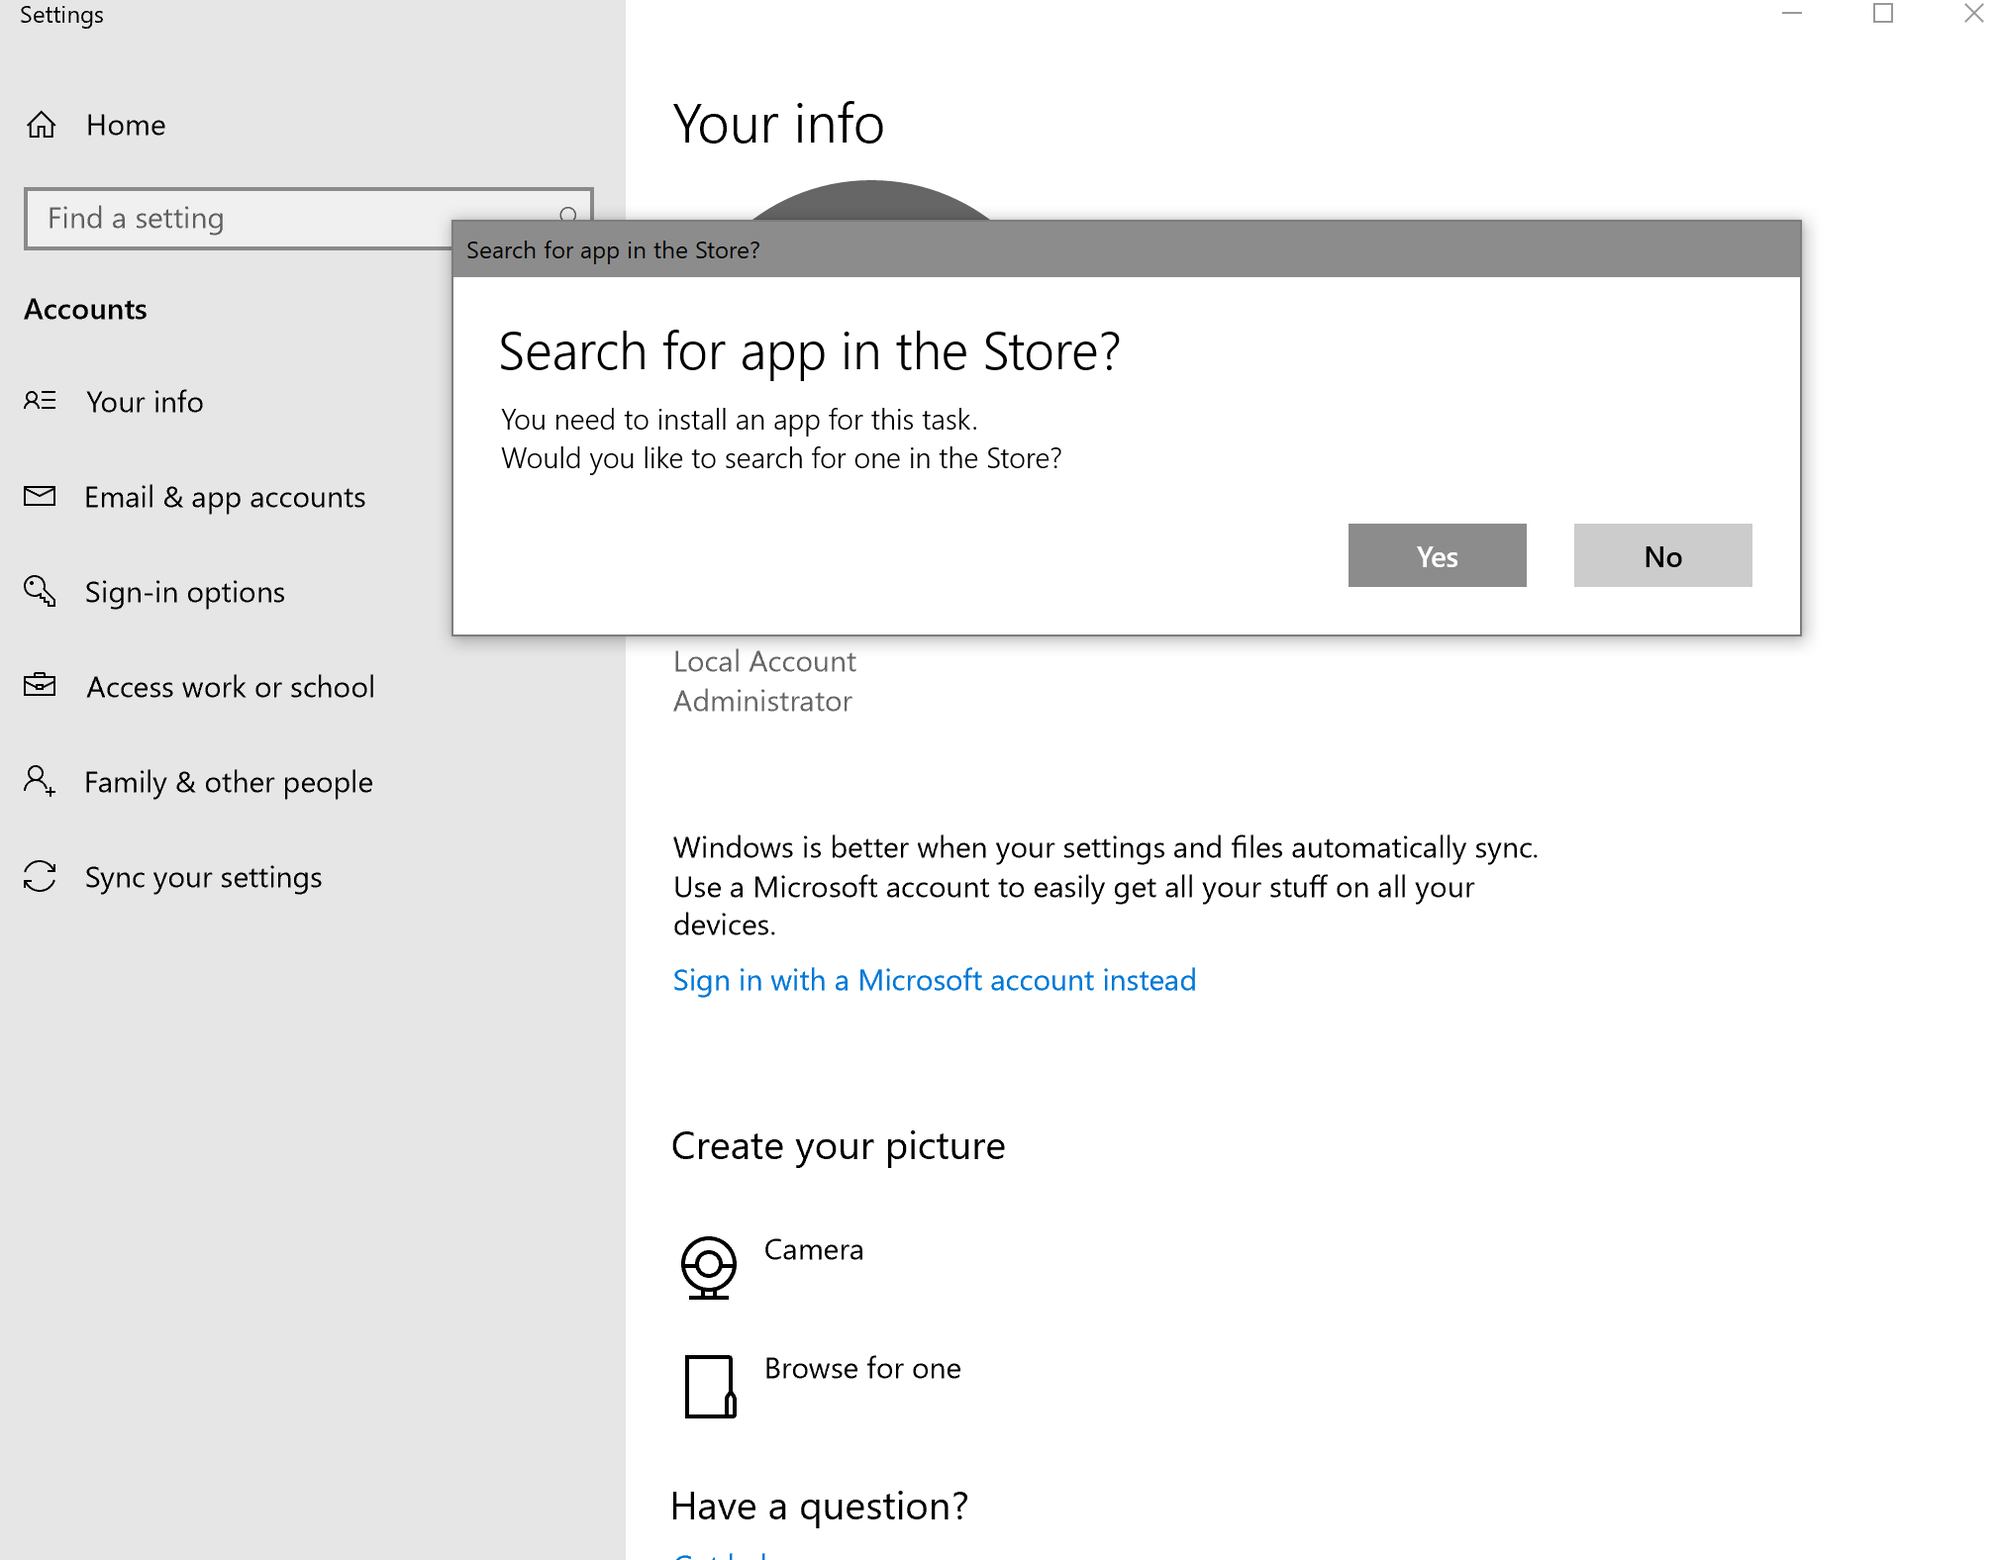 Microsoft Account Sign-In Error: Asks for Windows store app